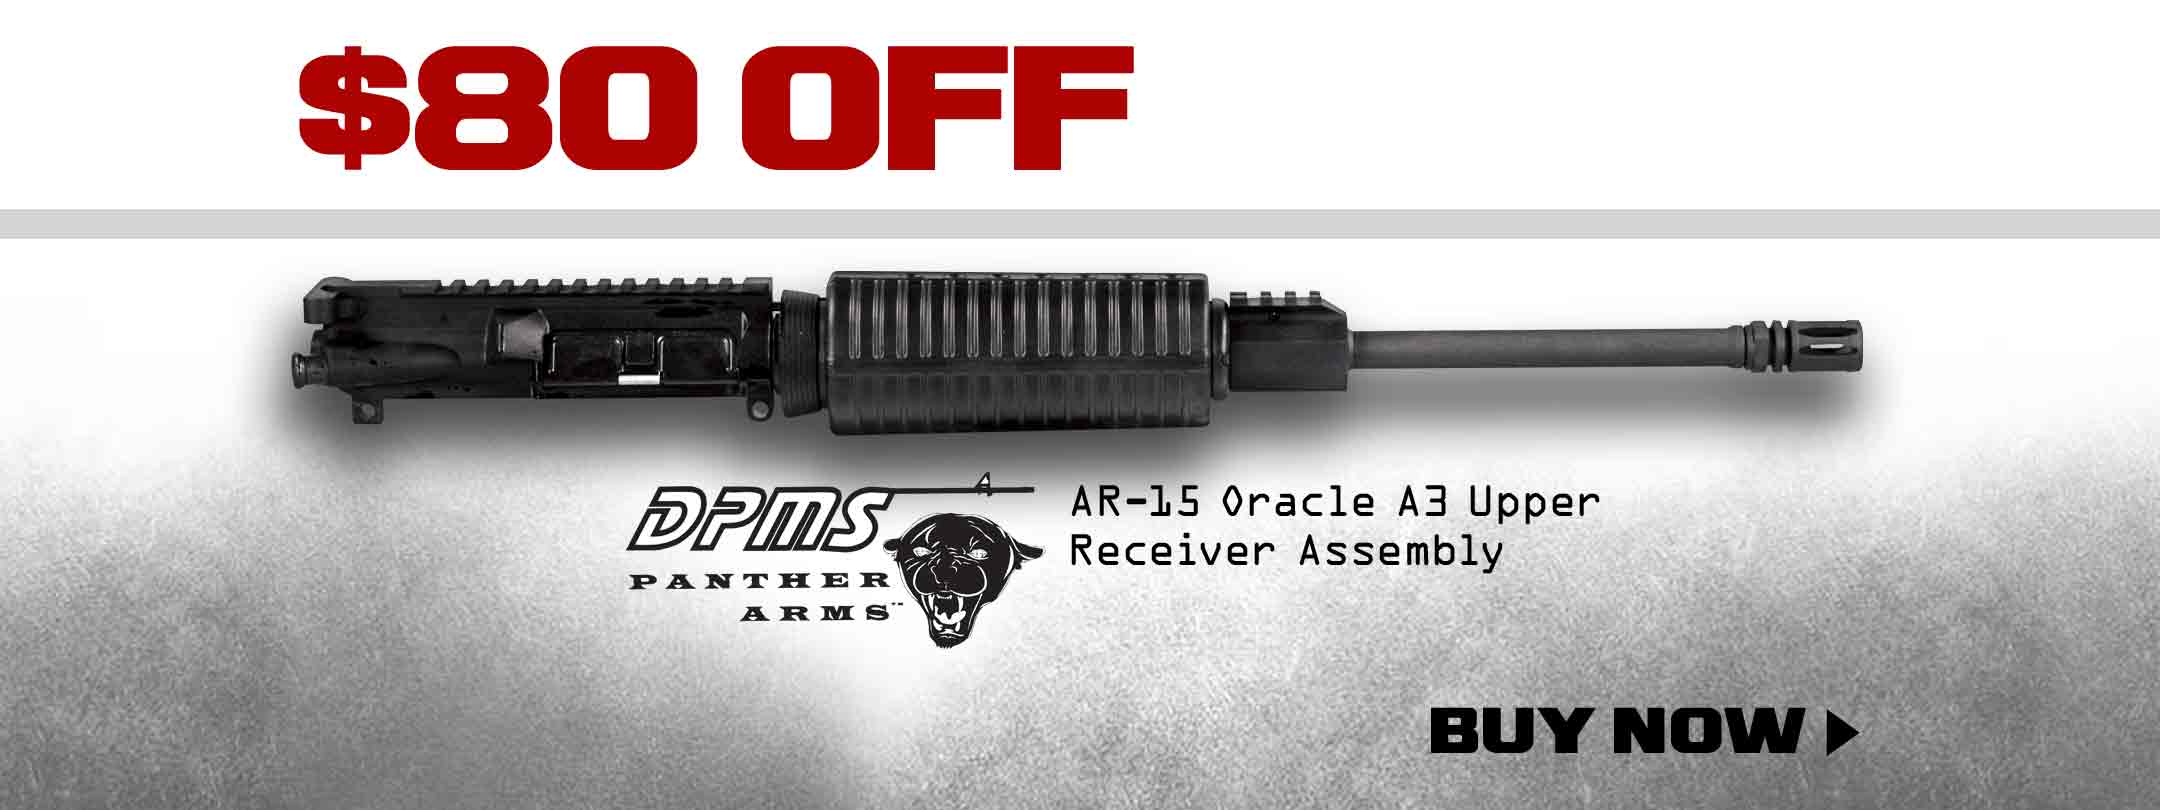 $80 Off DPMS AR-15 Oracle A3 Upper Receiver Assembly